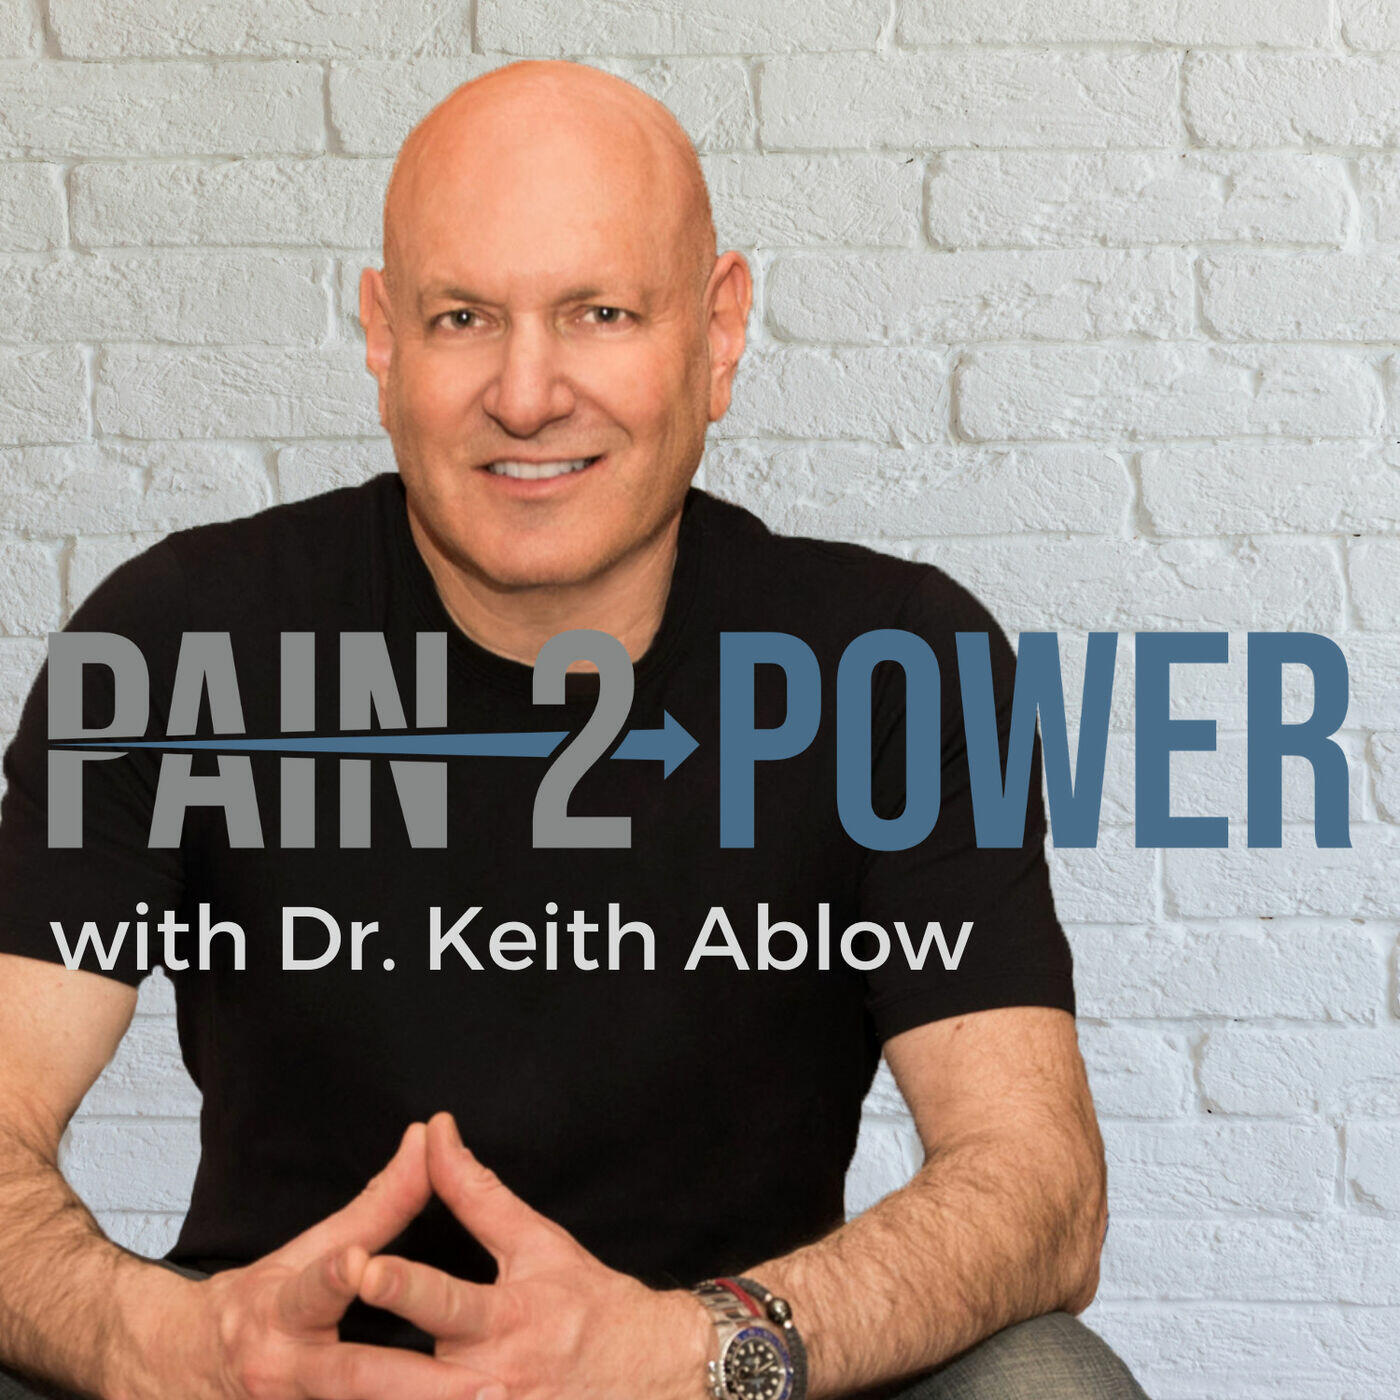 Dr. Keith's Pain-2-Power